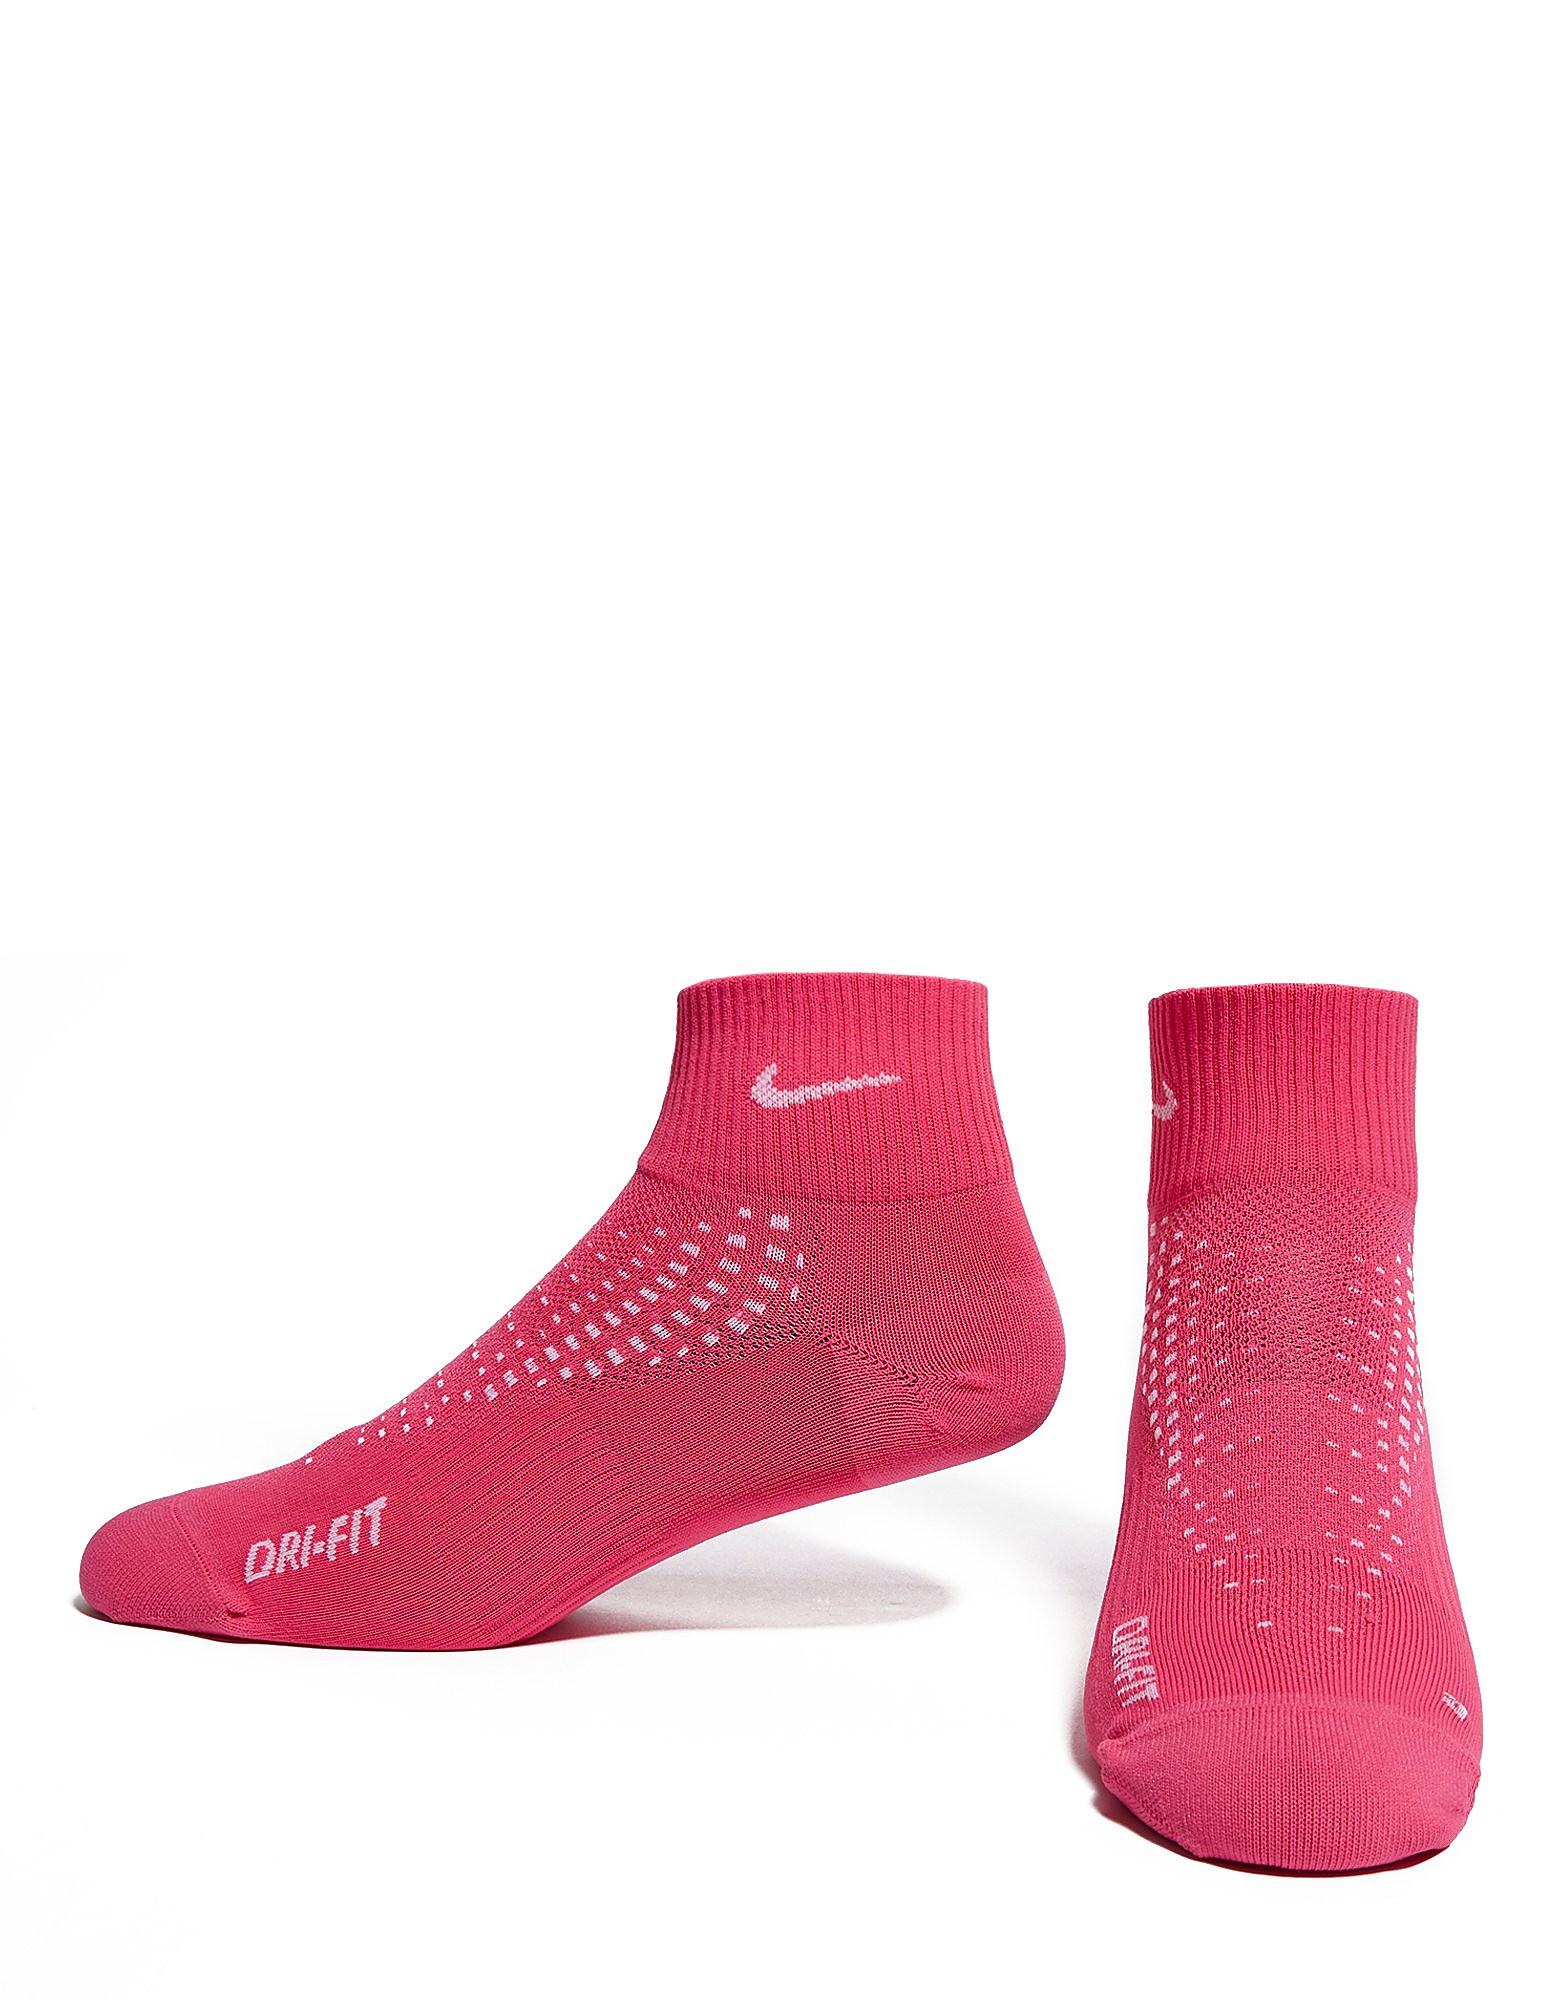 Nike Running Anti-Blister Quarter Socks